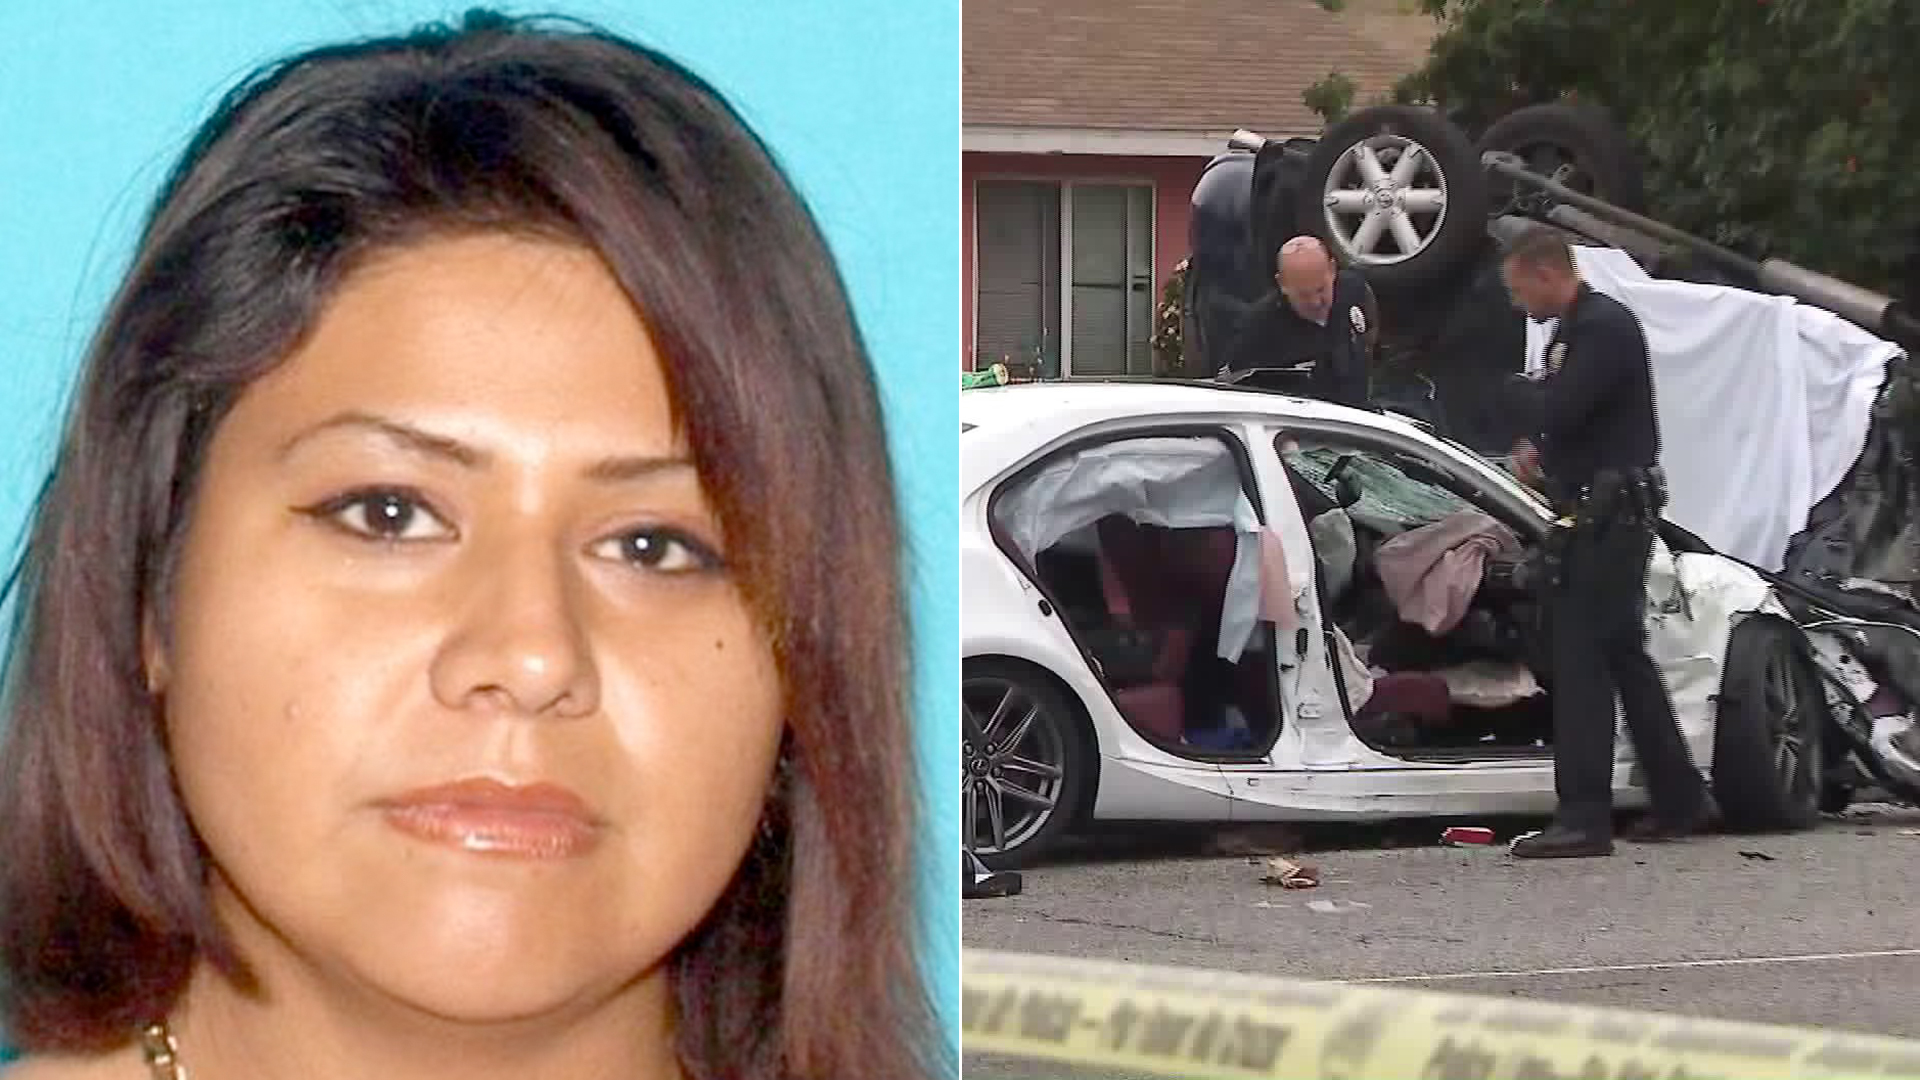 Maritza Joana Lara is seen in an undated driver's license photo released June 18, 2019, by the Los Angeles Police Department. On the right, officials assess the scene of a deadly crash she allegedly caused in North Hills on June 16, 2019. (Credit: KTLA)